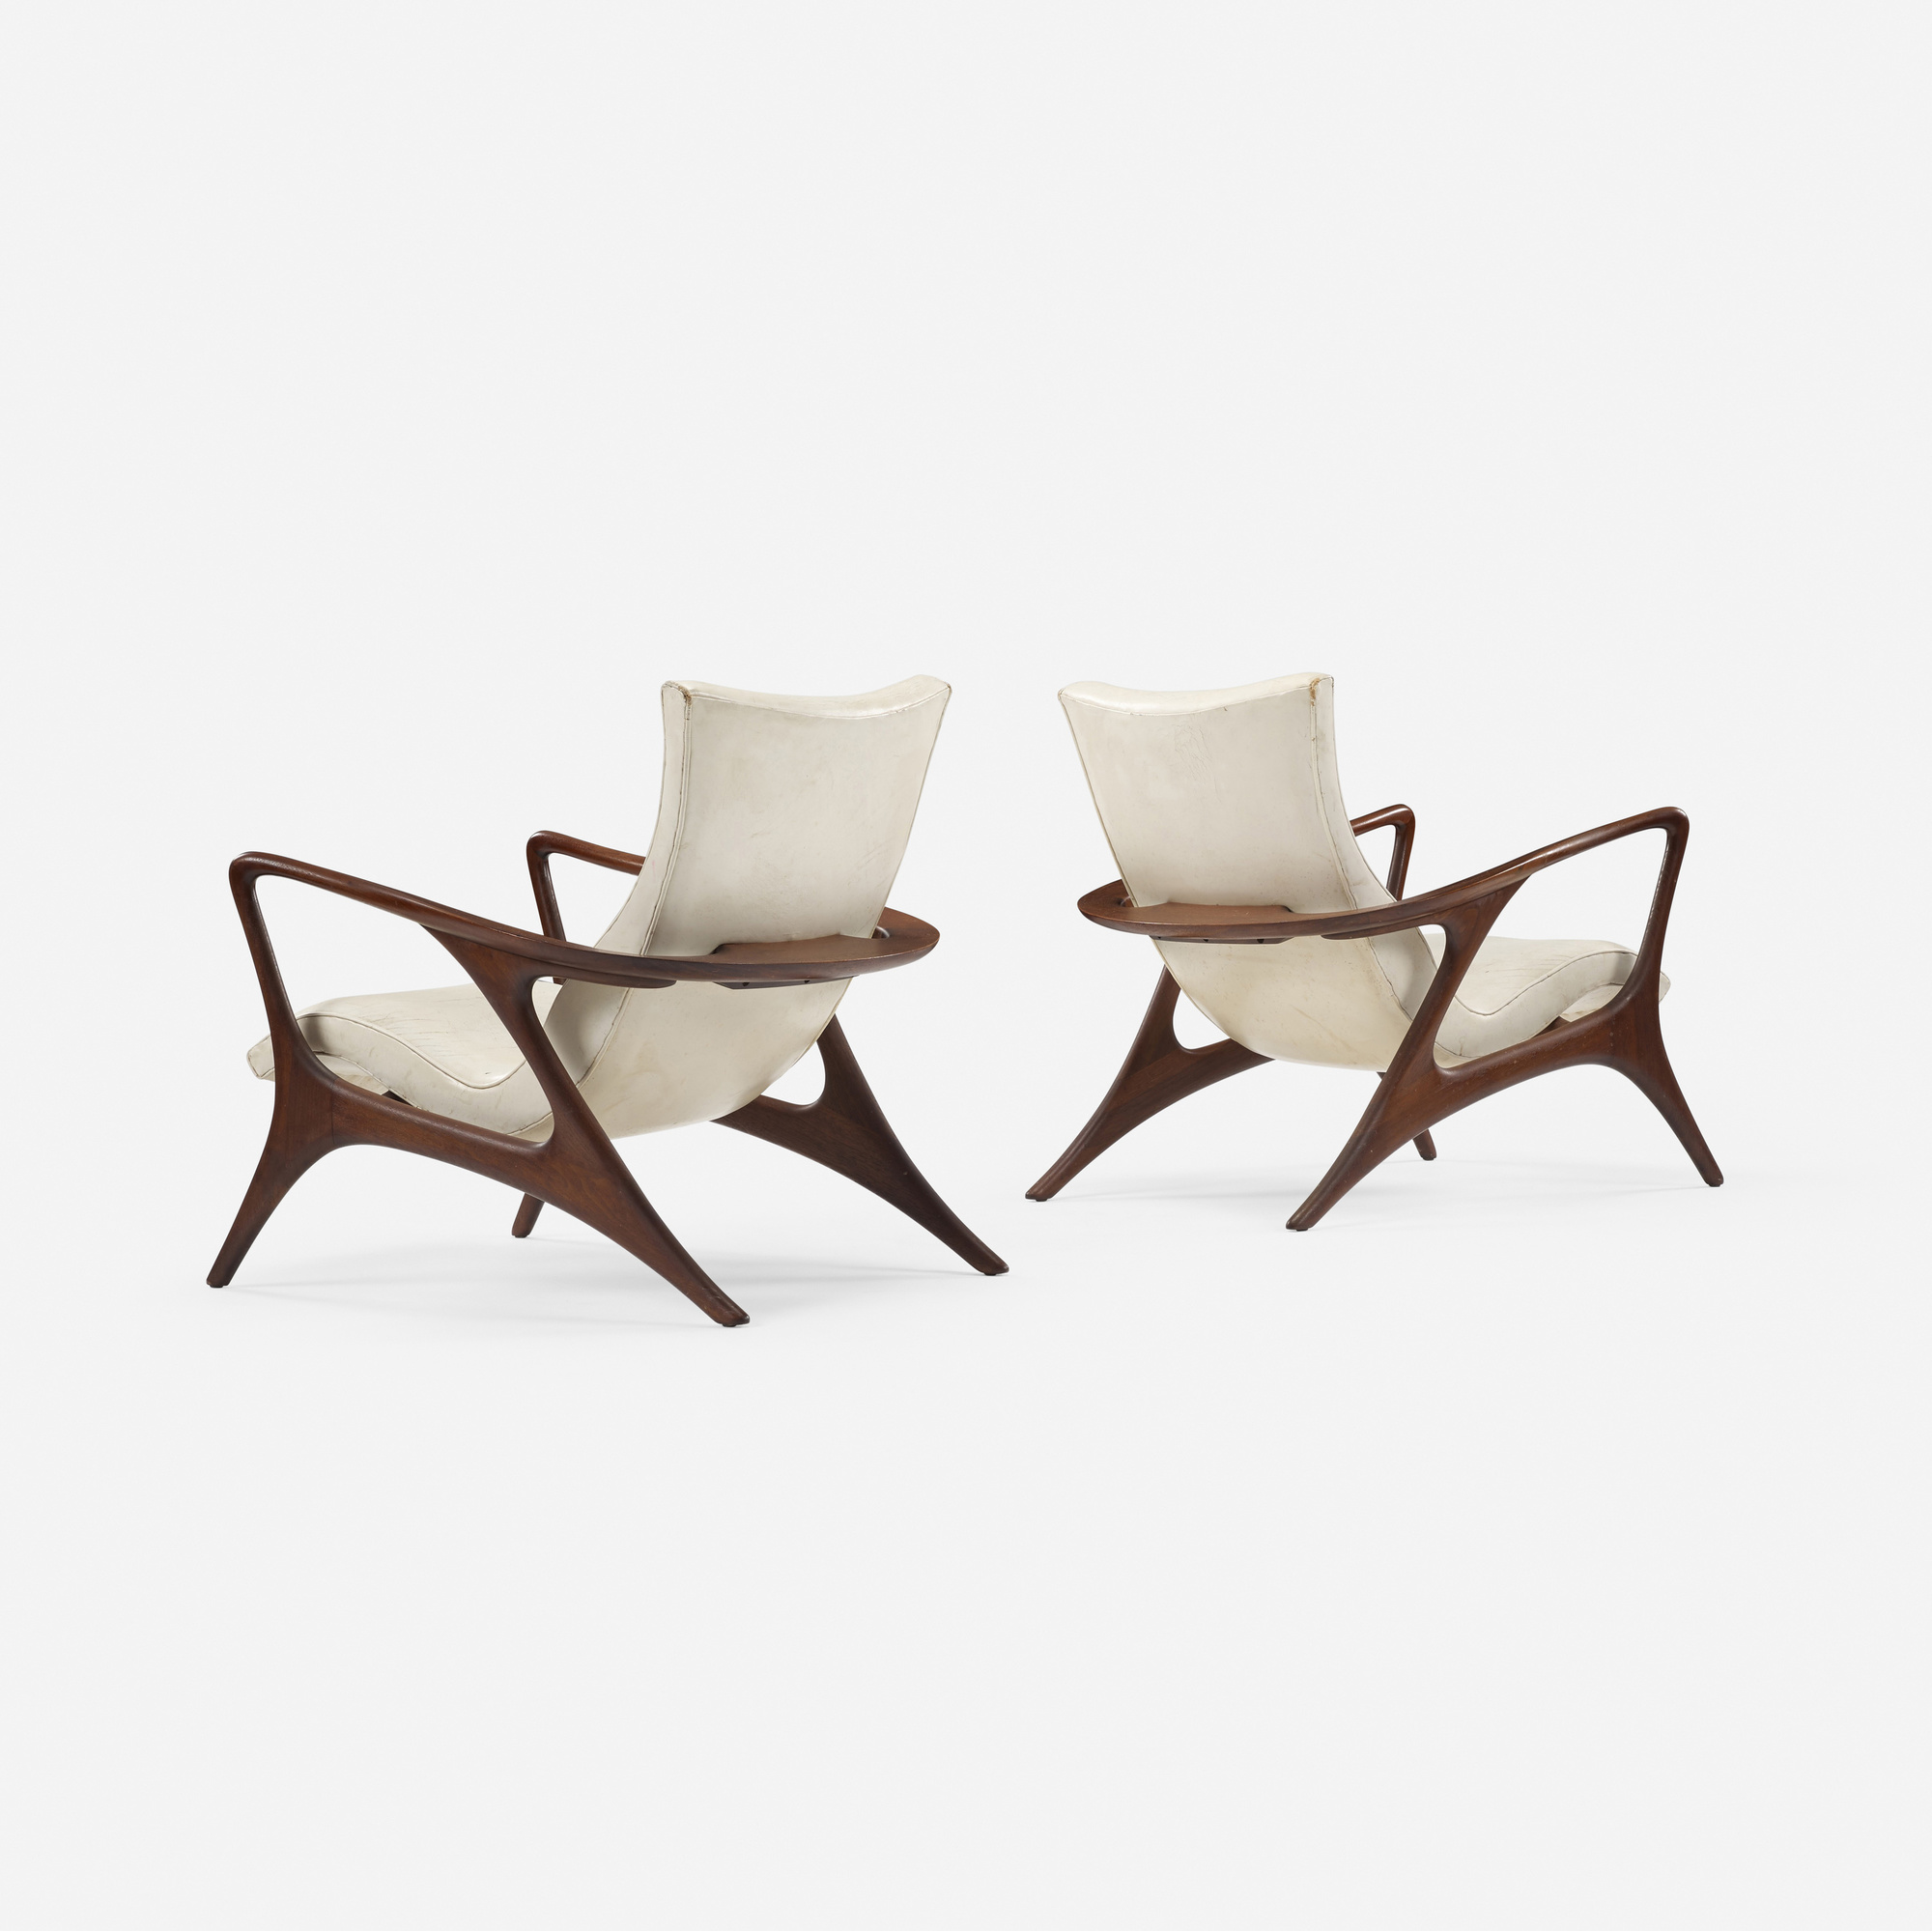 358: Vladimir Kagan / Contour lounge chairs, pair (2 of 5)